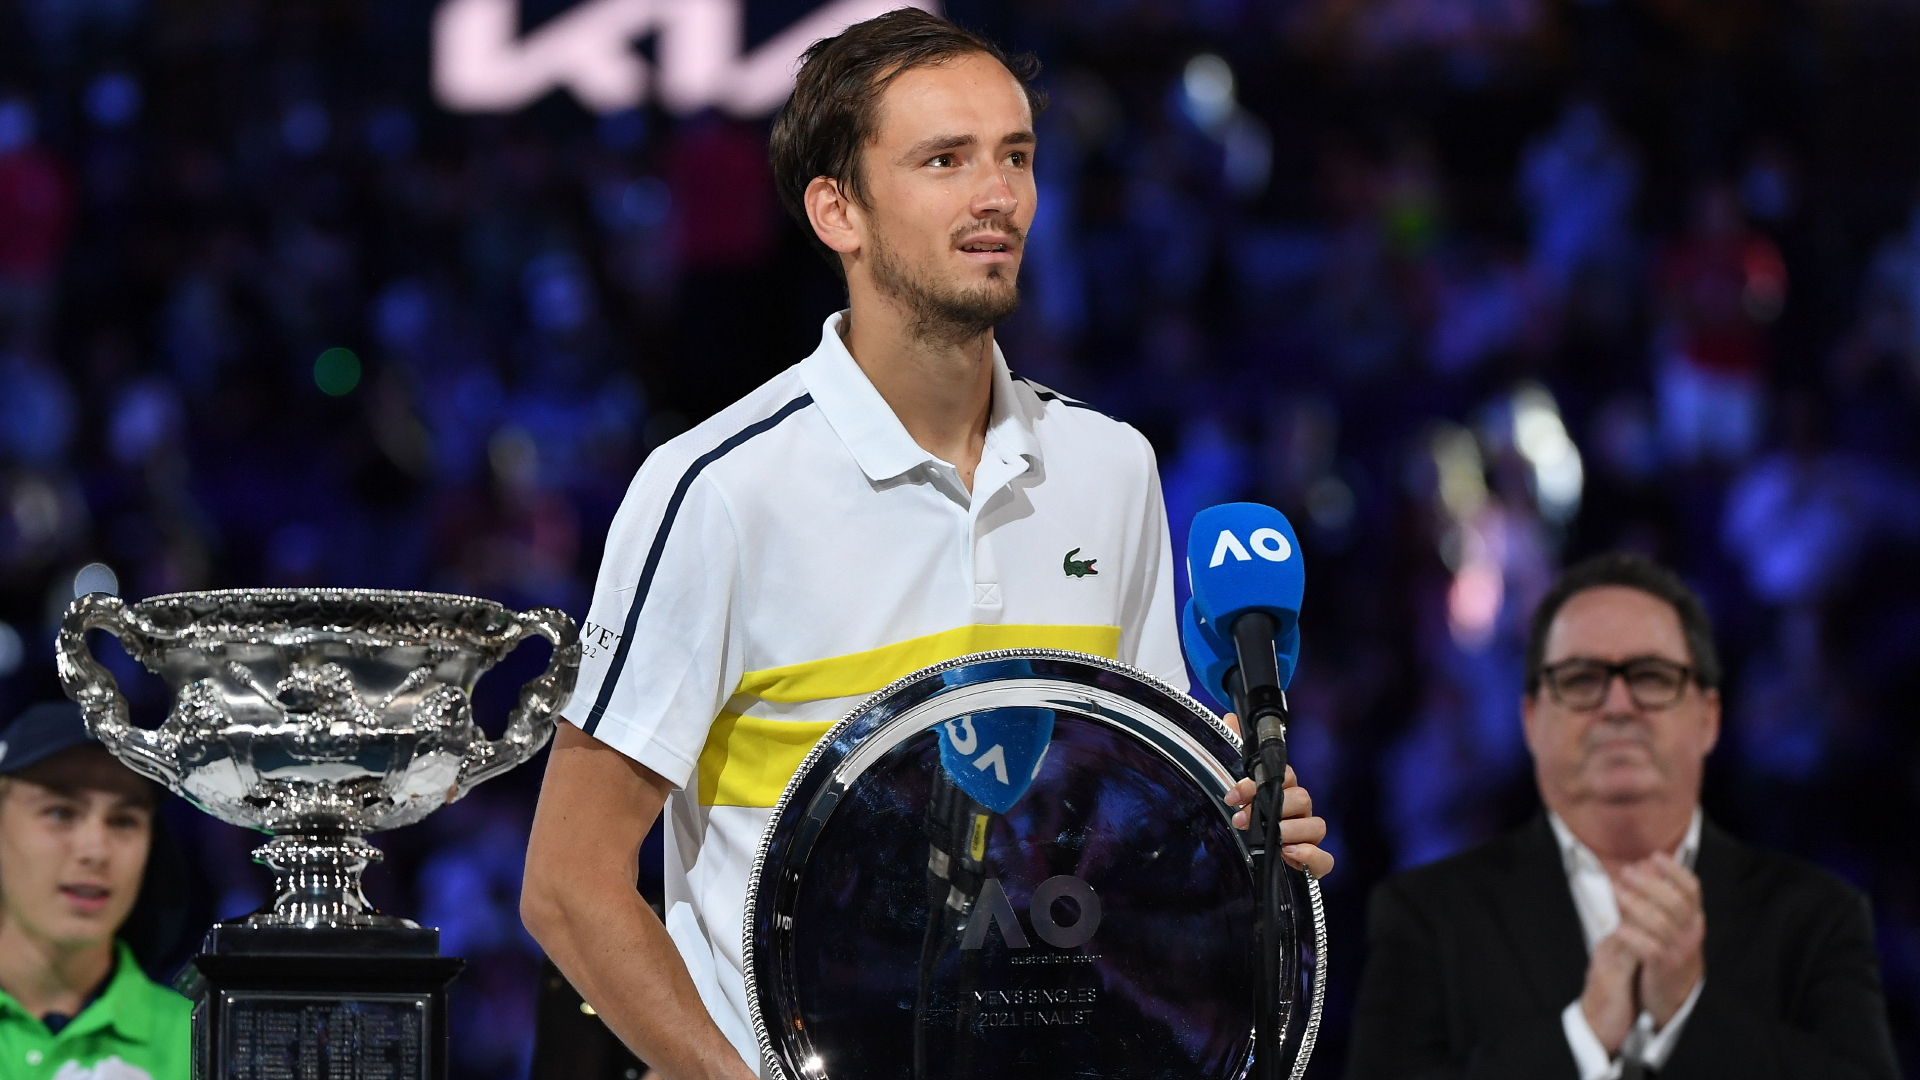 Australian Open: I could've played better, says Medvedev after final defeat to Djokovic